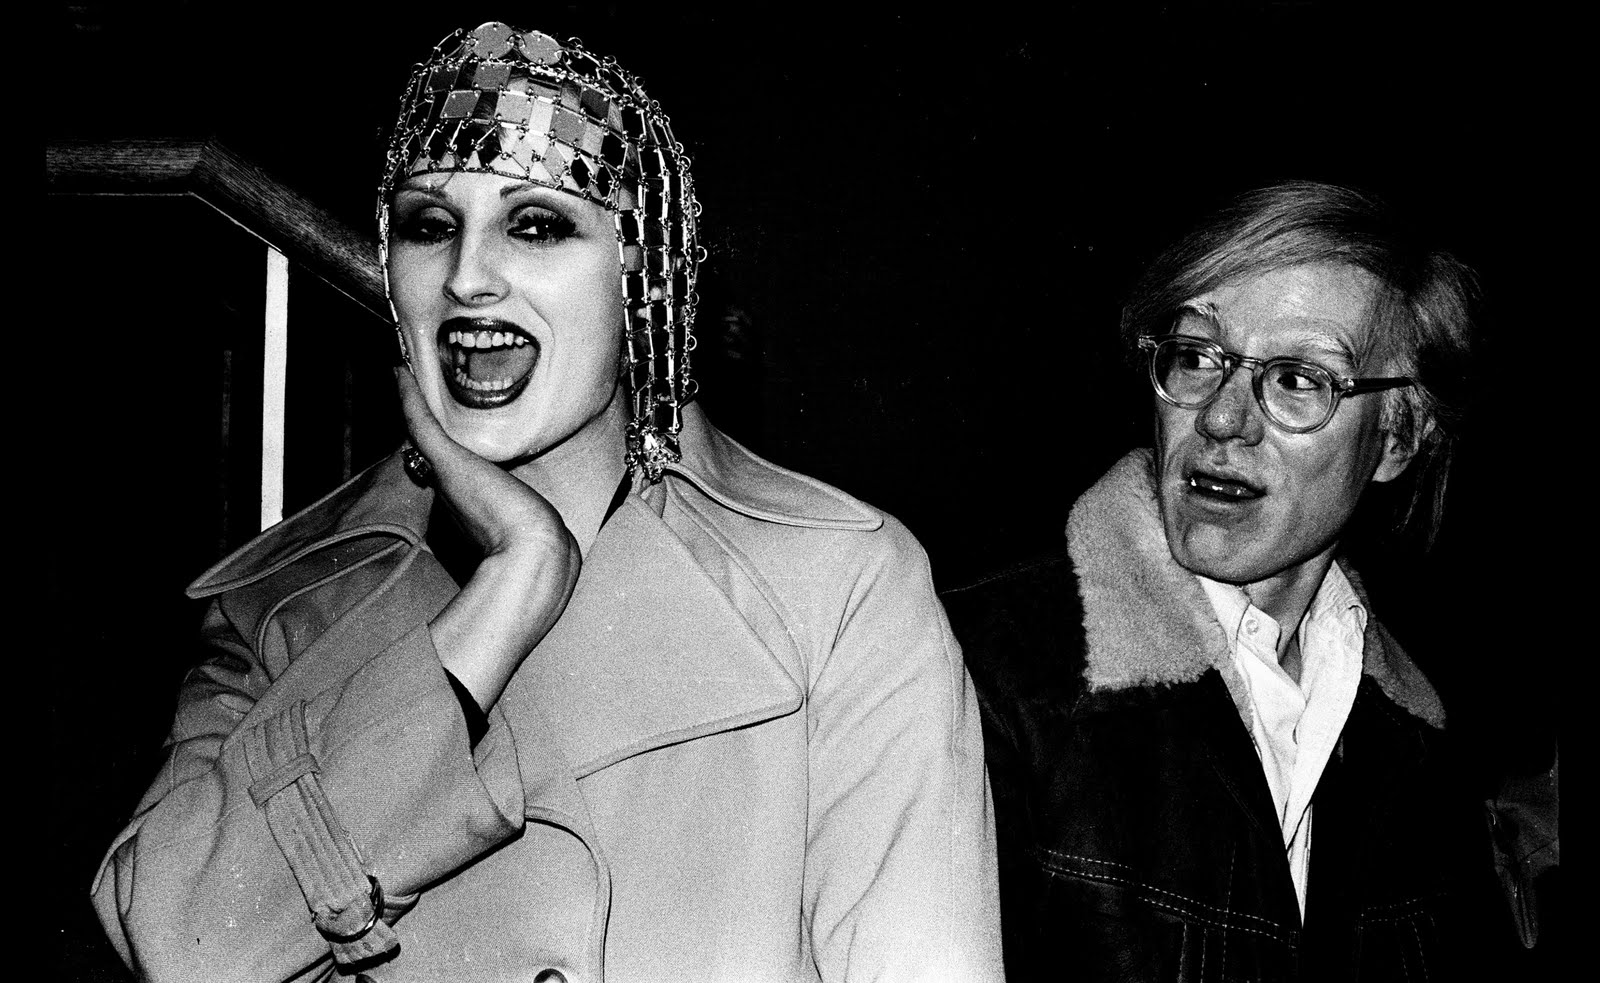 Andy warhol and candy darling  early 1970s